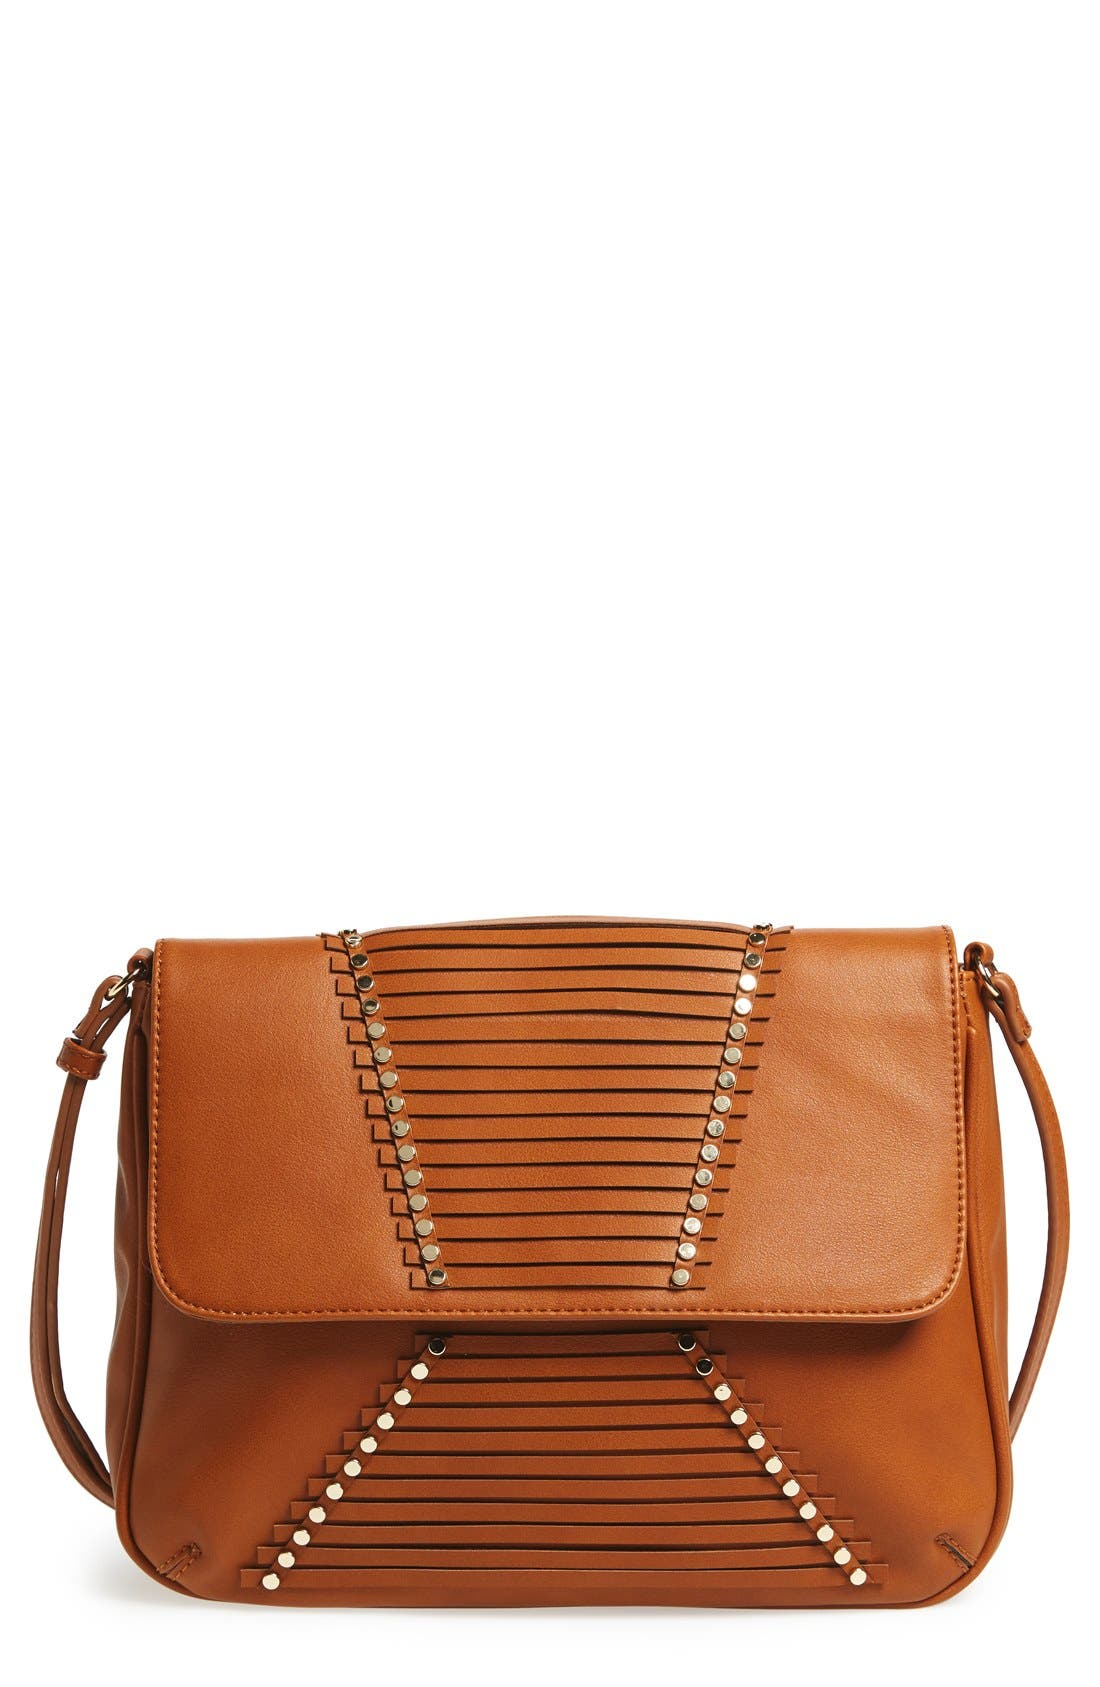 'Larissa' Studded Flap Faux Leather Crossbody Bag,                             Main thumbnail 1, color,                             Cognac